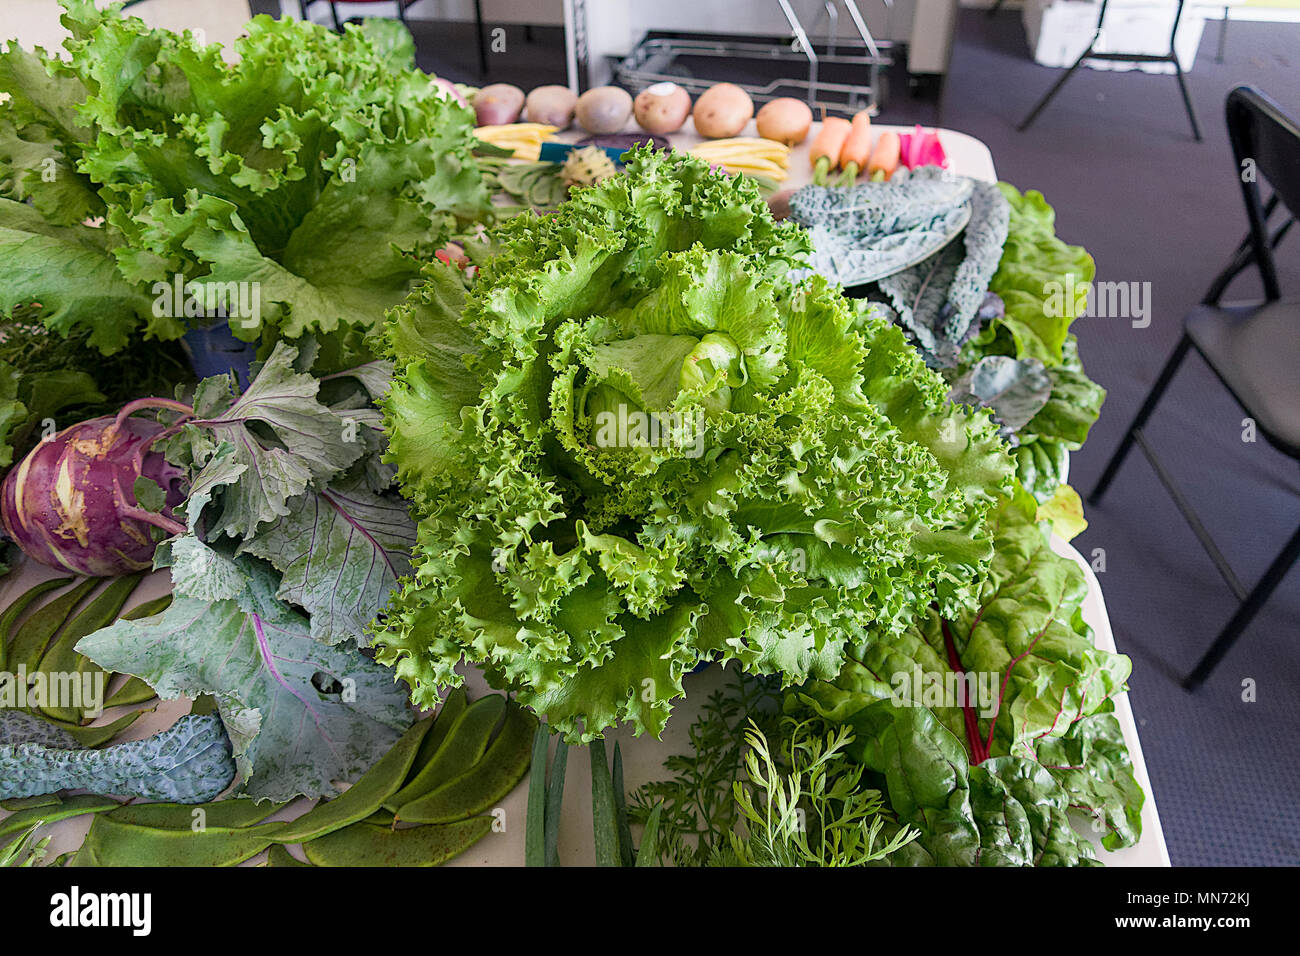 On display at a local shopping centre, the publice were very interested to see what can be produced in back-yards with a little effort. - Stock Image